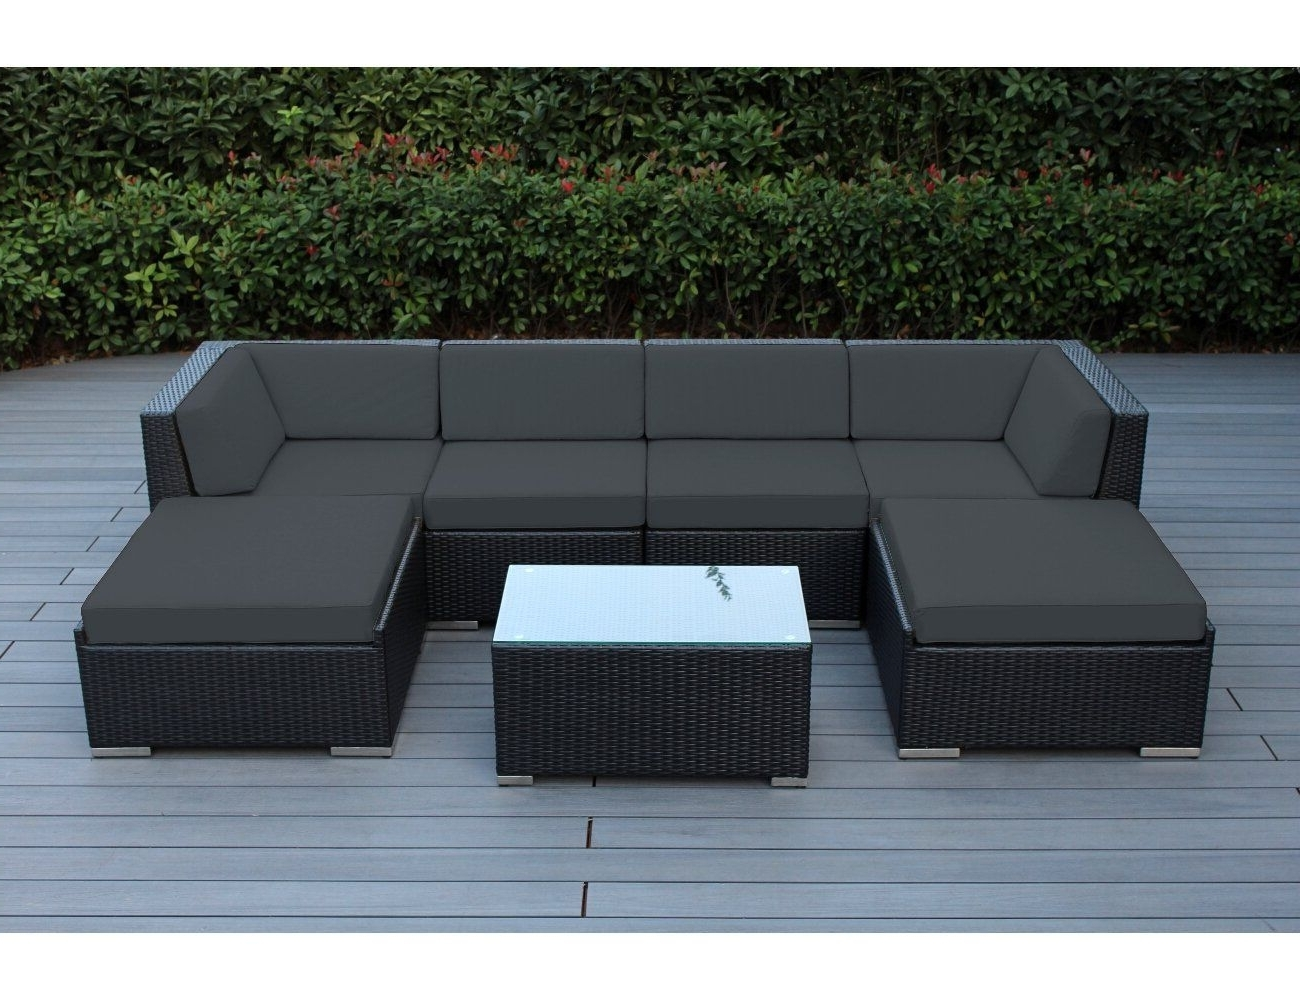 Well Known Conversation Patio Sets With Outdoor Sectionals Within Ohana 7 Piece Outdoor Patio Furniture Sectional Conversation Set (View 14 of 15)